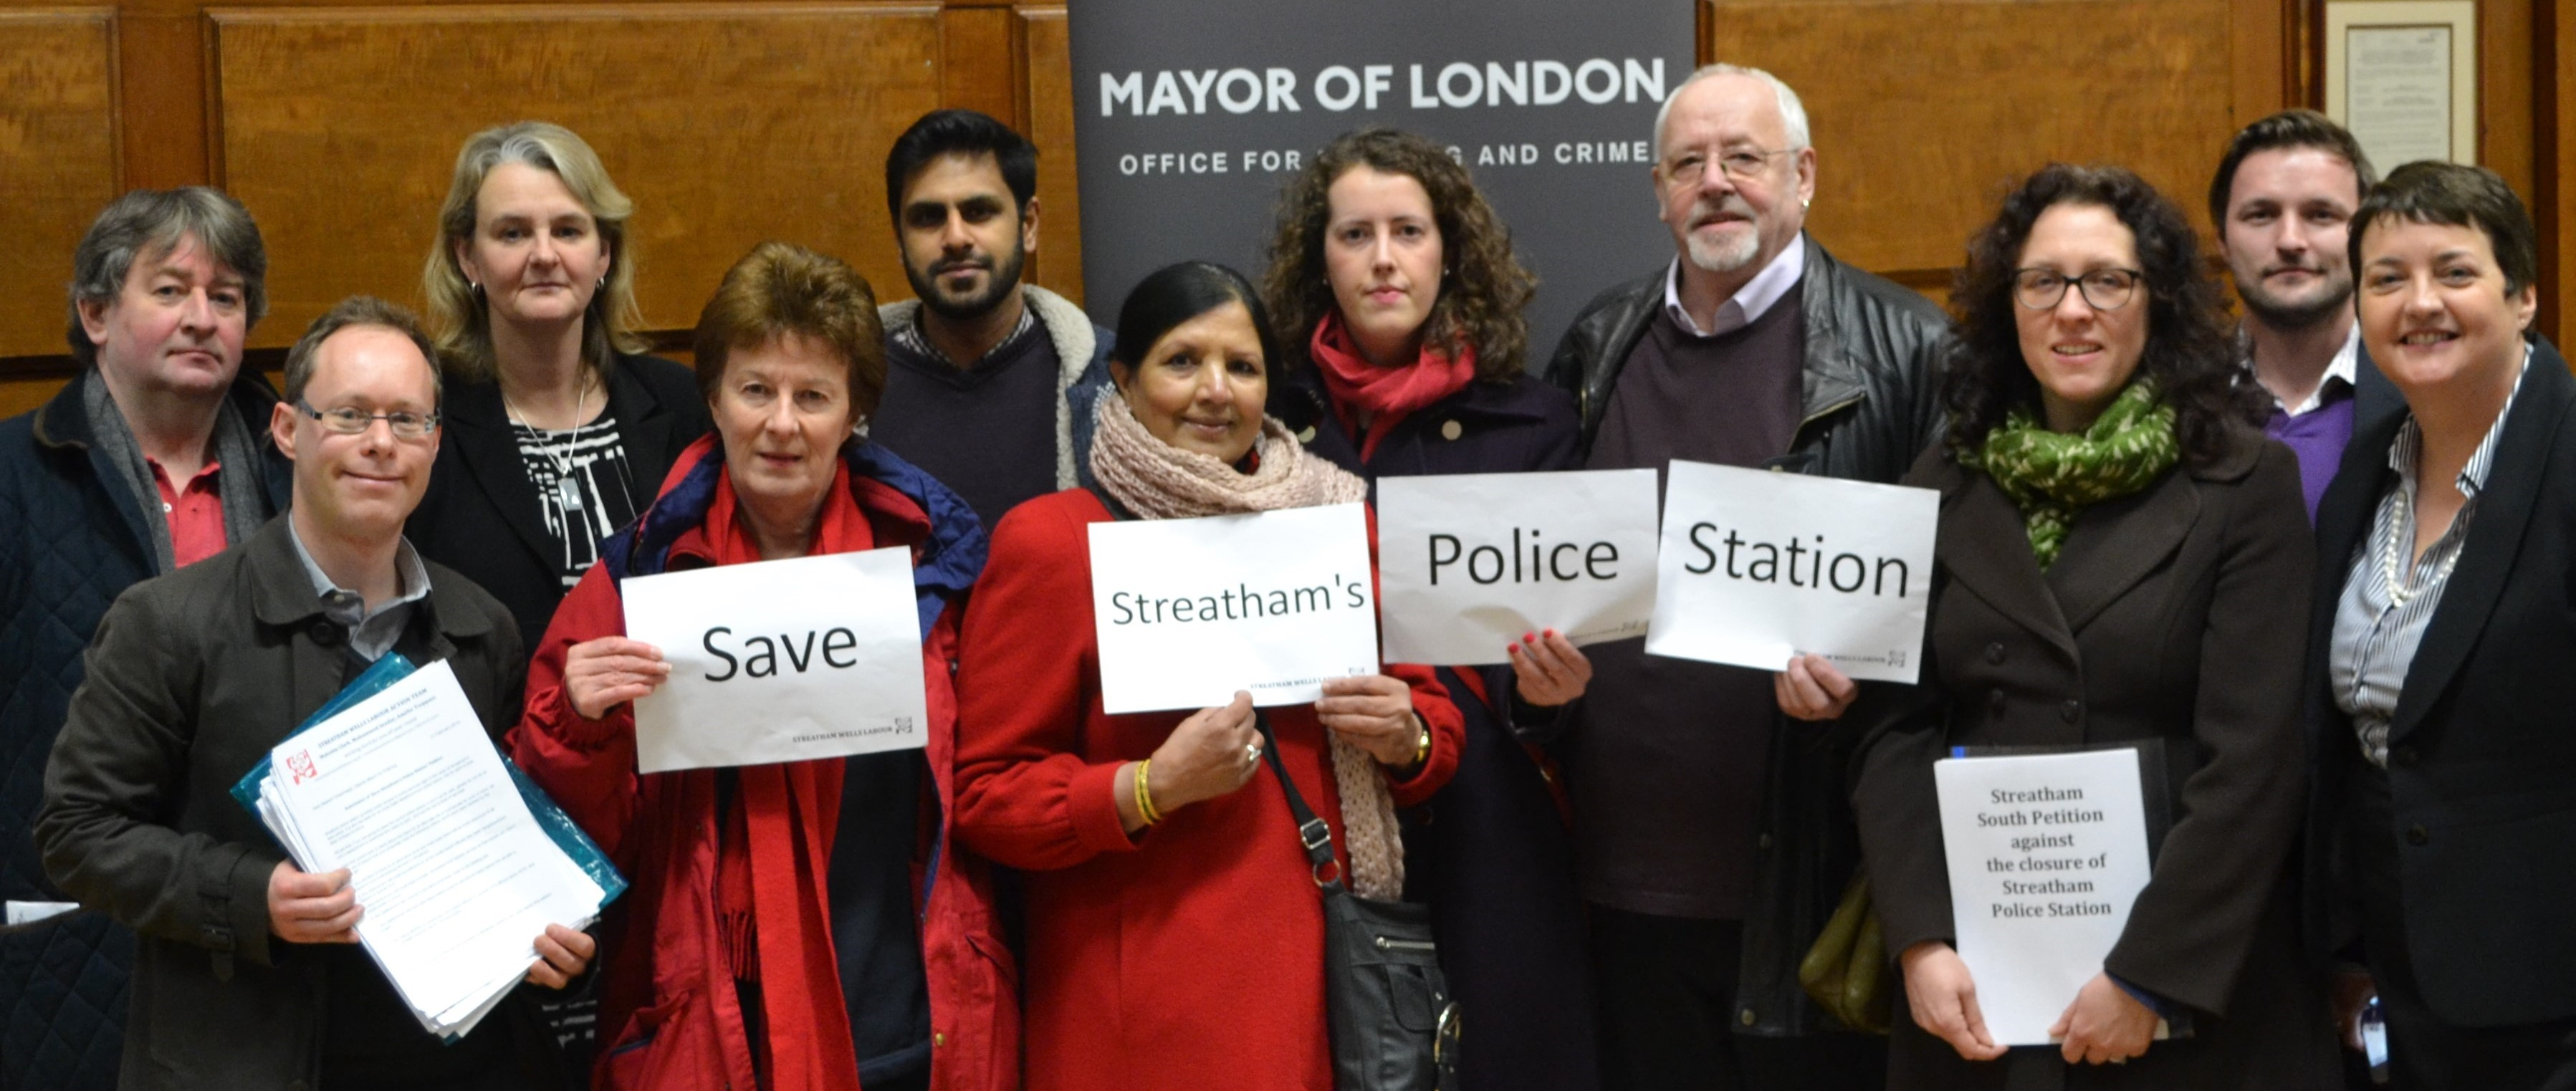 Streatham_Labour_candidates_and_Val_and_Lib.jpg